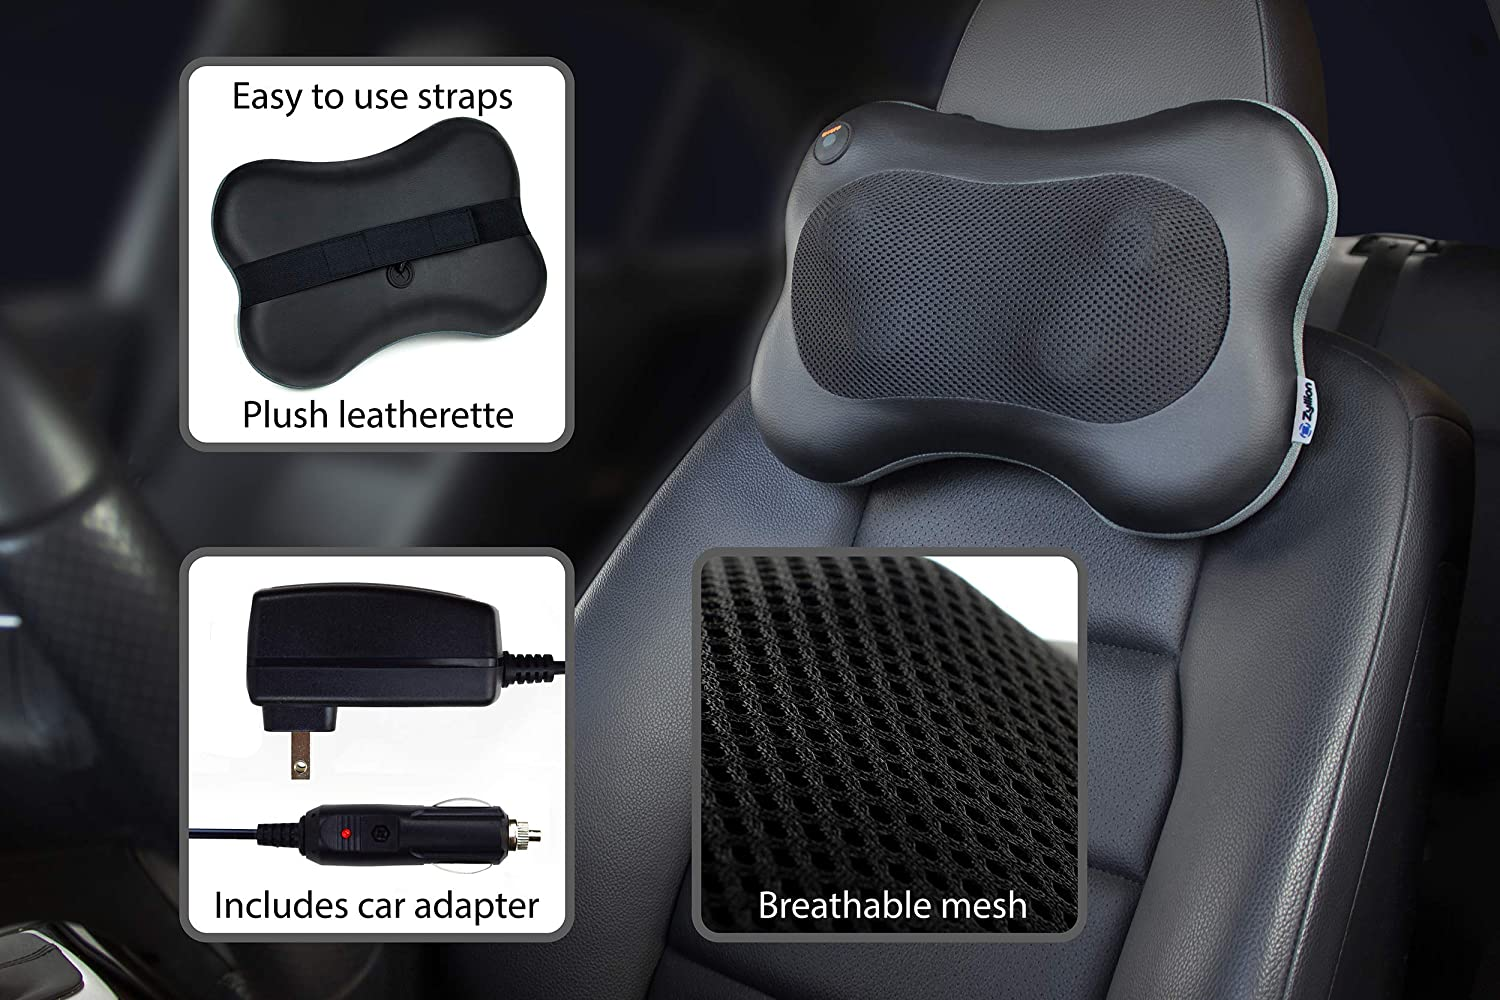 Zyllion Shiatsu Back and Neck Massager - Kneading Massage Pillow with Heat for Shoulders, Lower Back, Calf - Use at Home and Car, Black, (ZMA-13-BK): Home & Kitchen